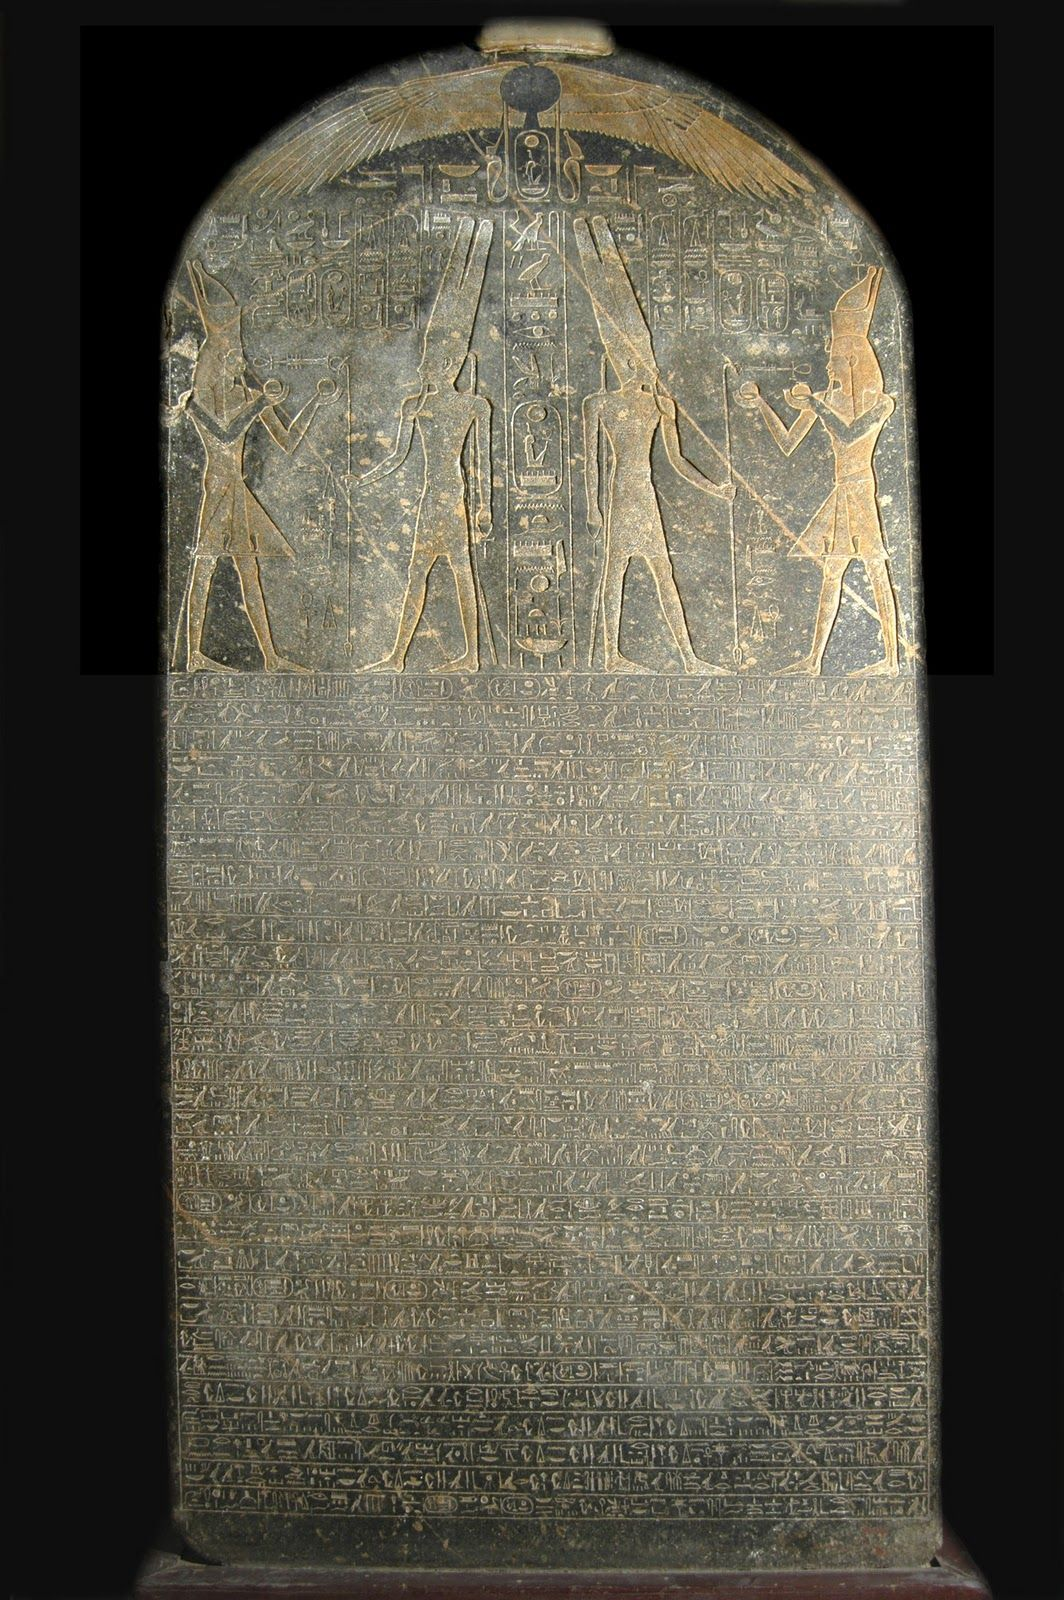 Merneptah Stele - First Mention of Israel in the historical record